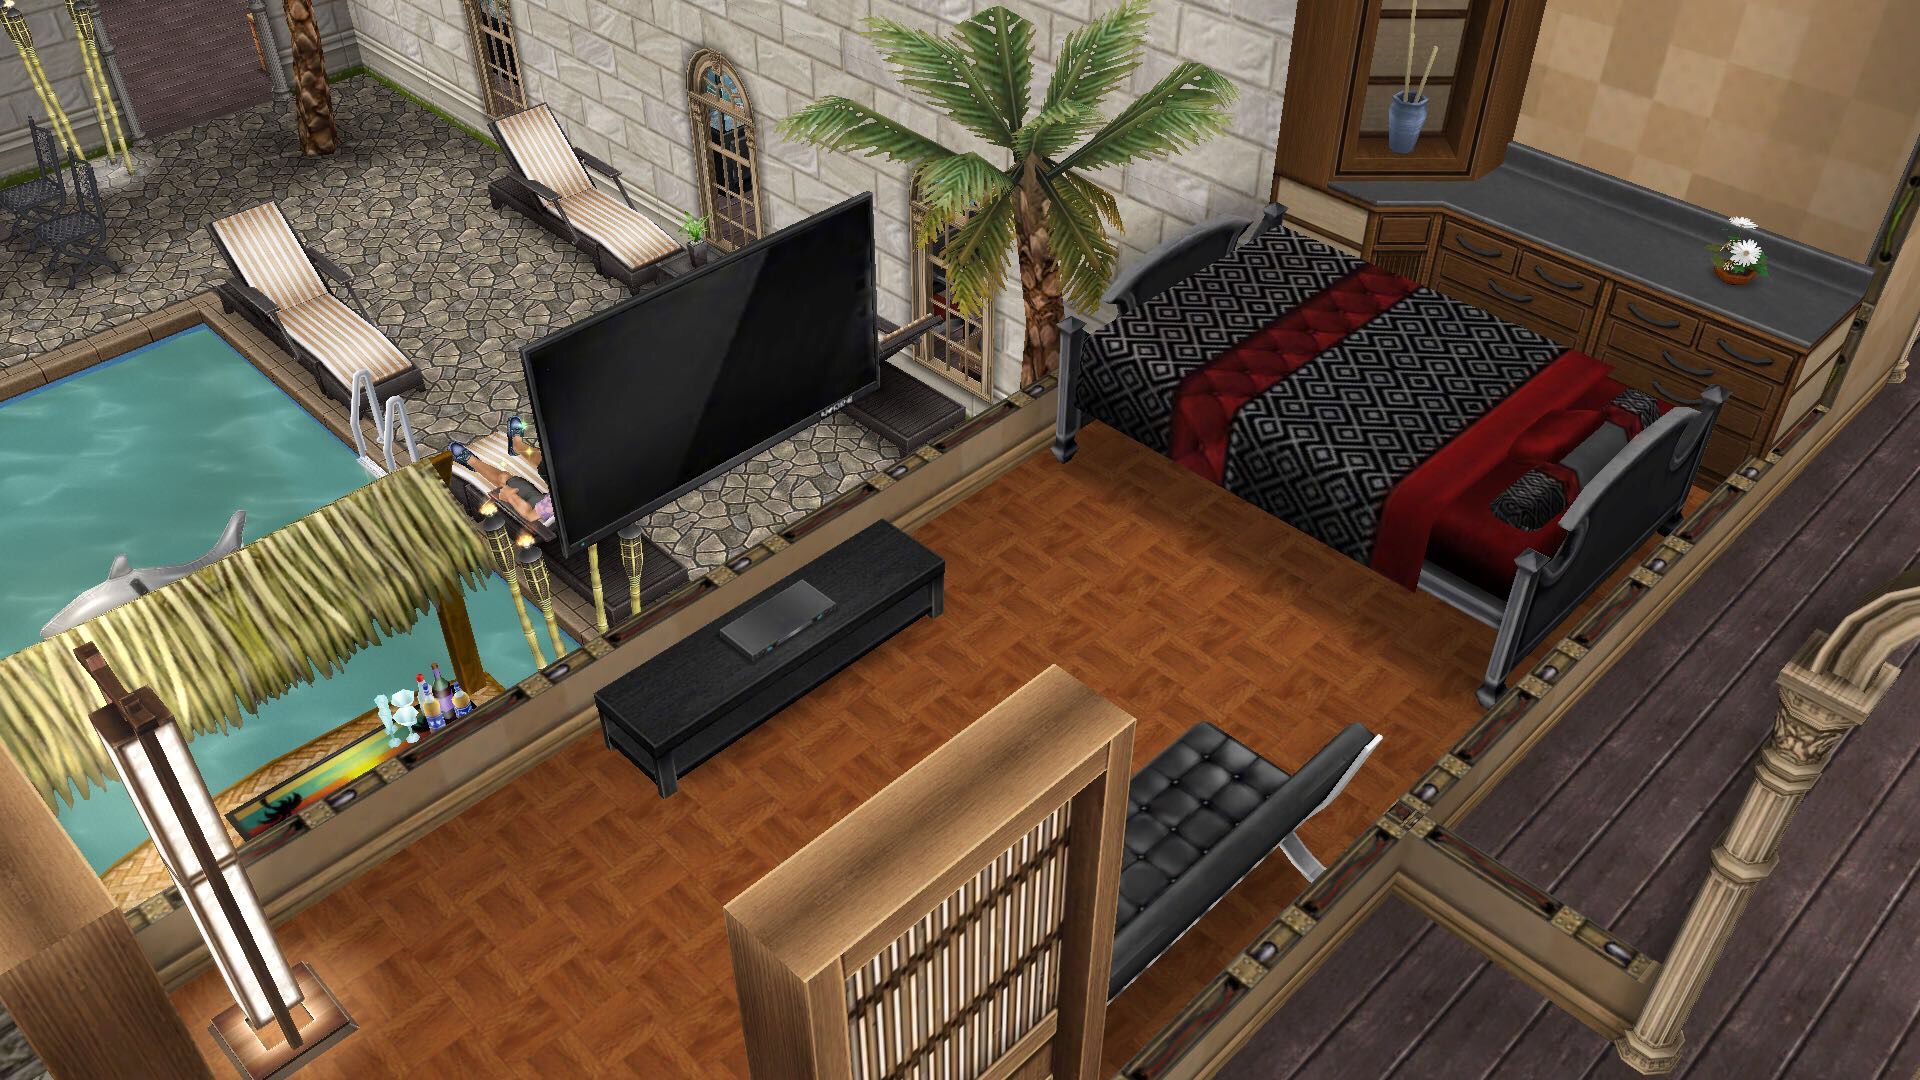 My Sims Free Play Sterling Archer S Y Summer Hideout Bedroom 10 13